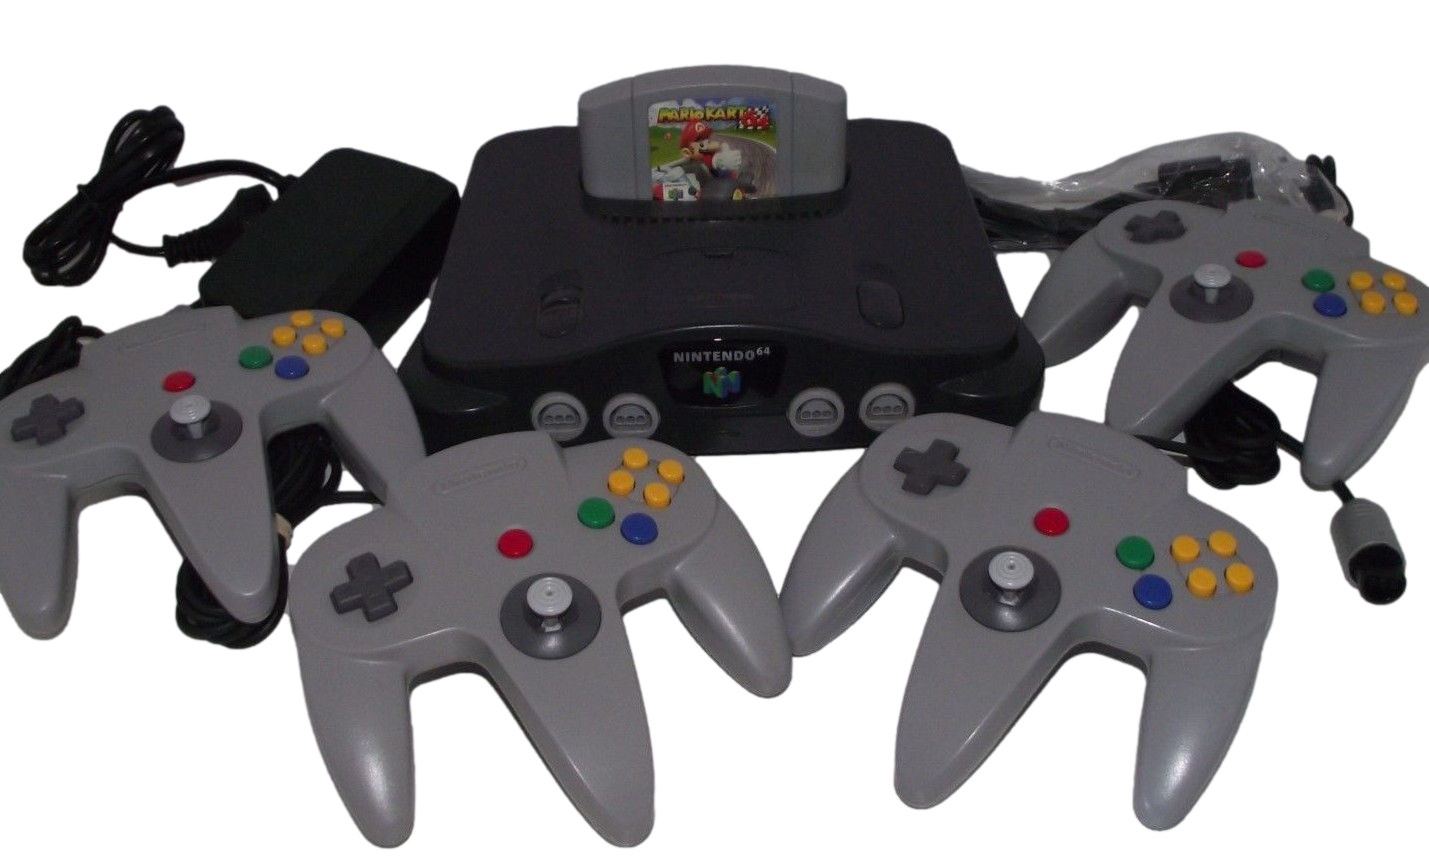 Nintendo 64 Console + 4 Controllers + Mario Kart N64 PAL Refurbed Bundle (Preowned)